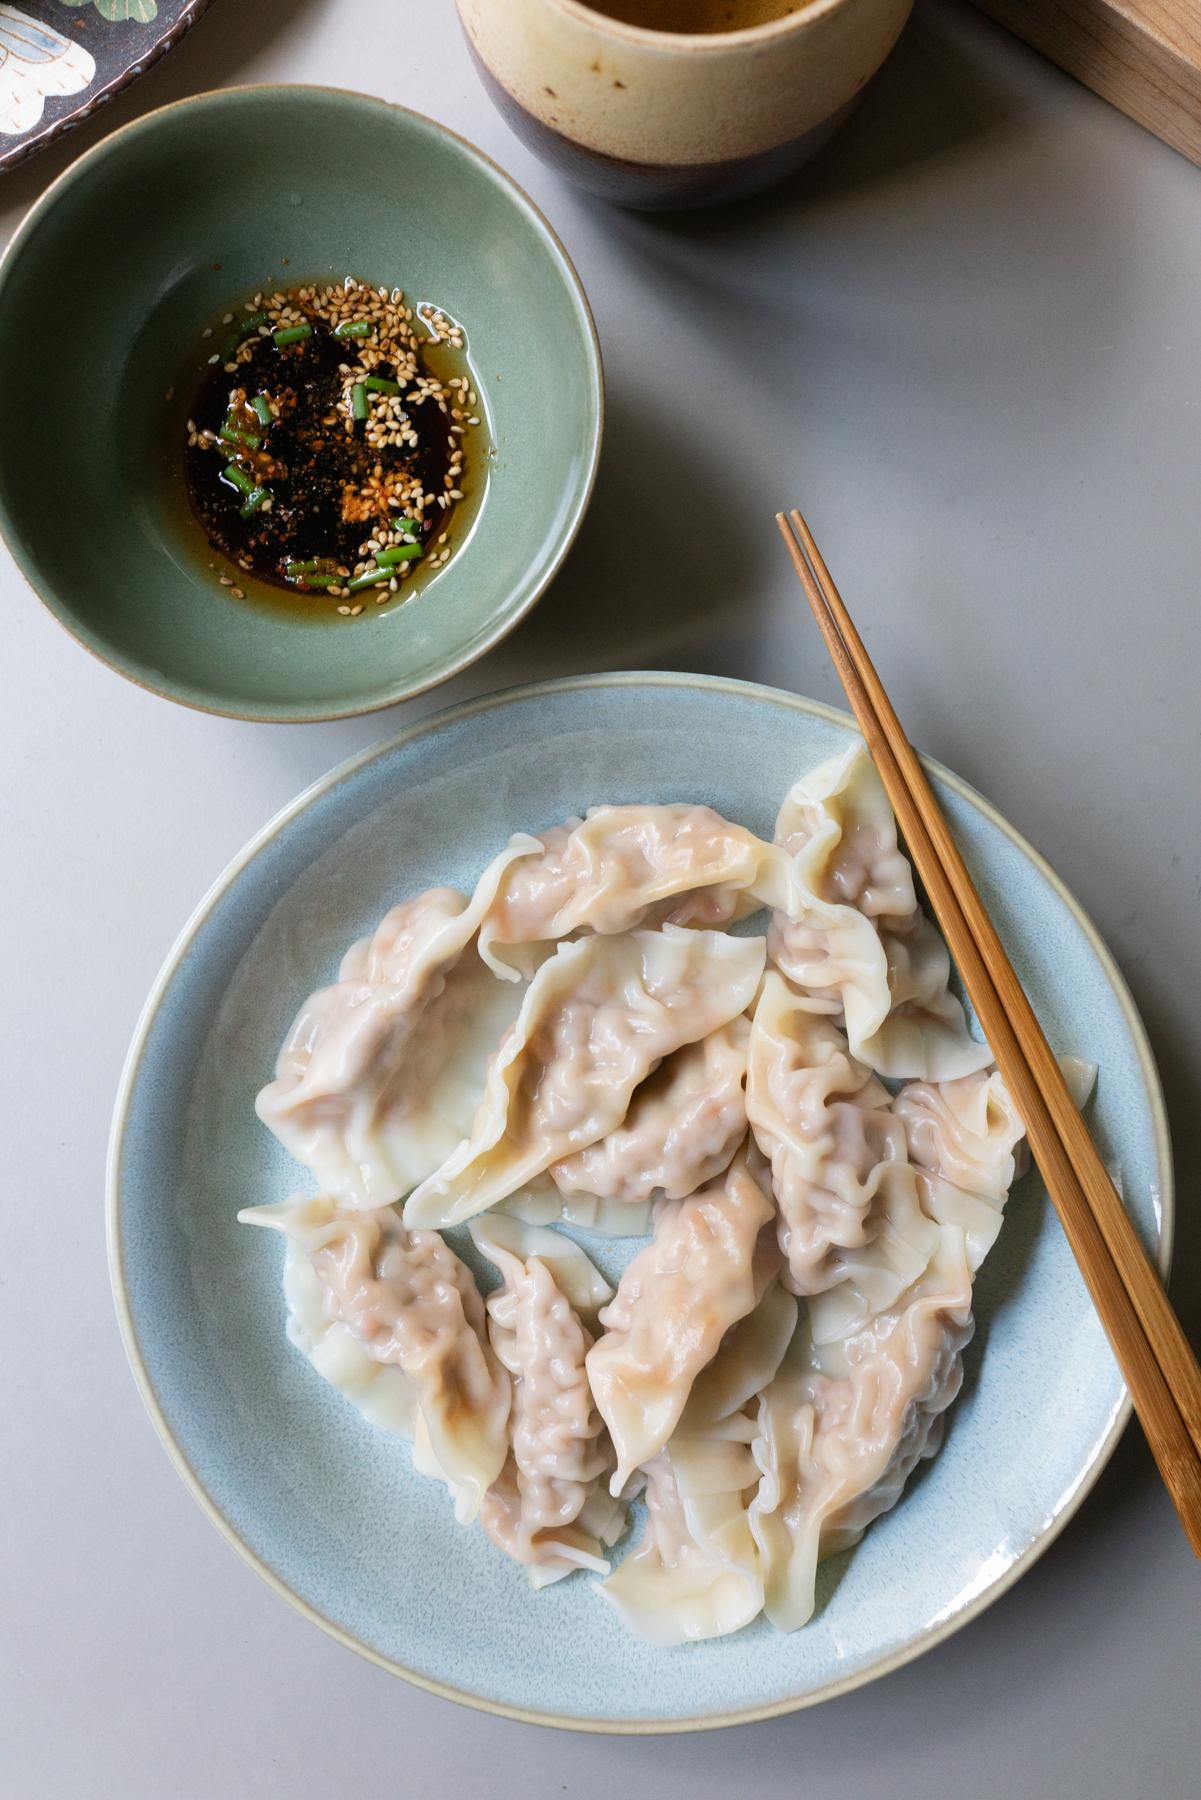 Plate of boiled kimchi dumplings and dipping sauce